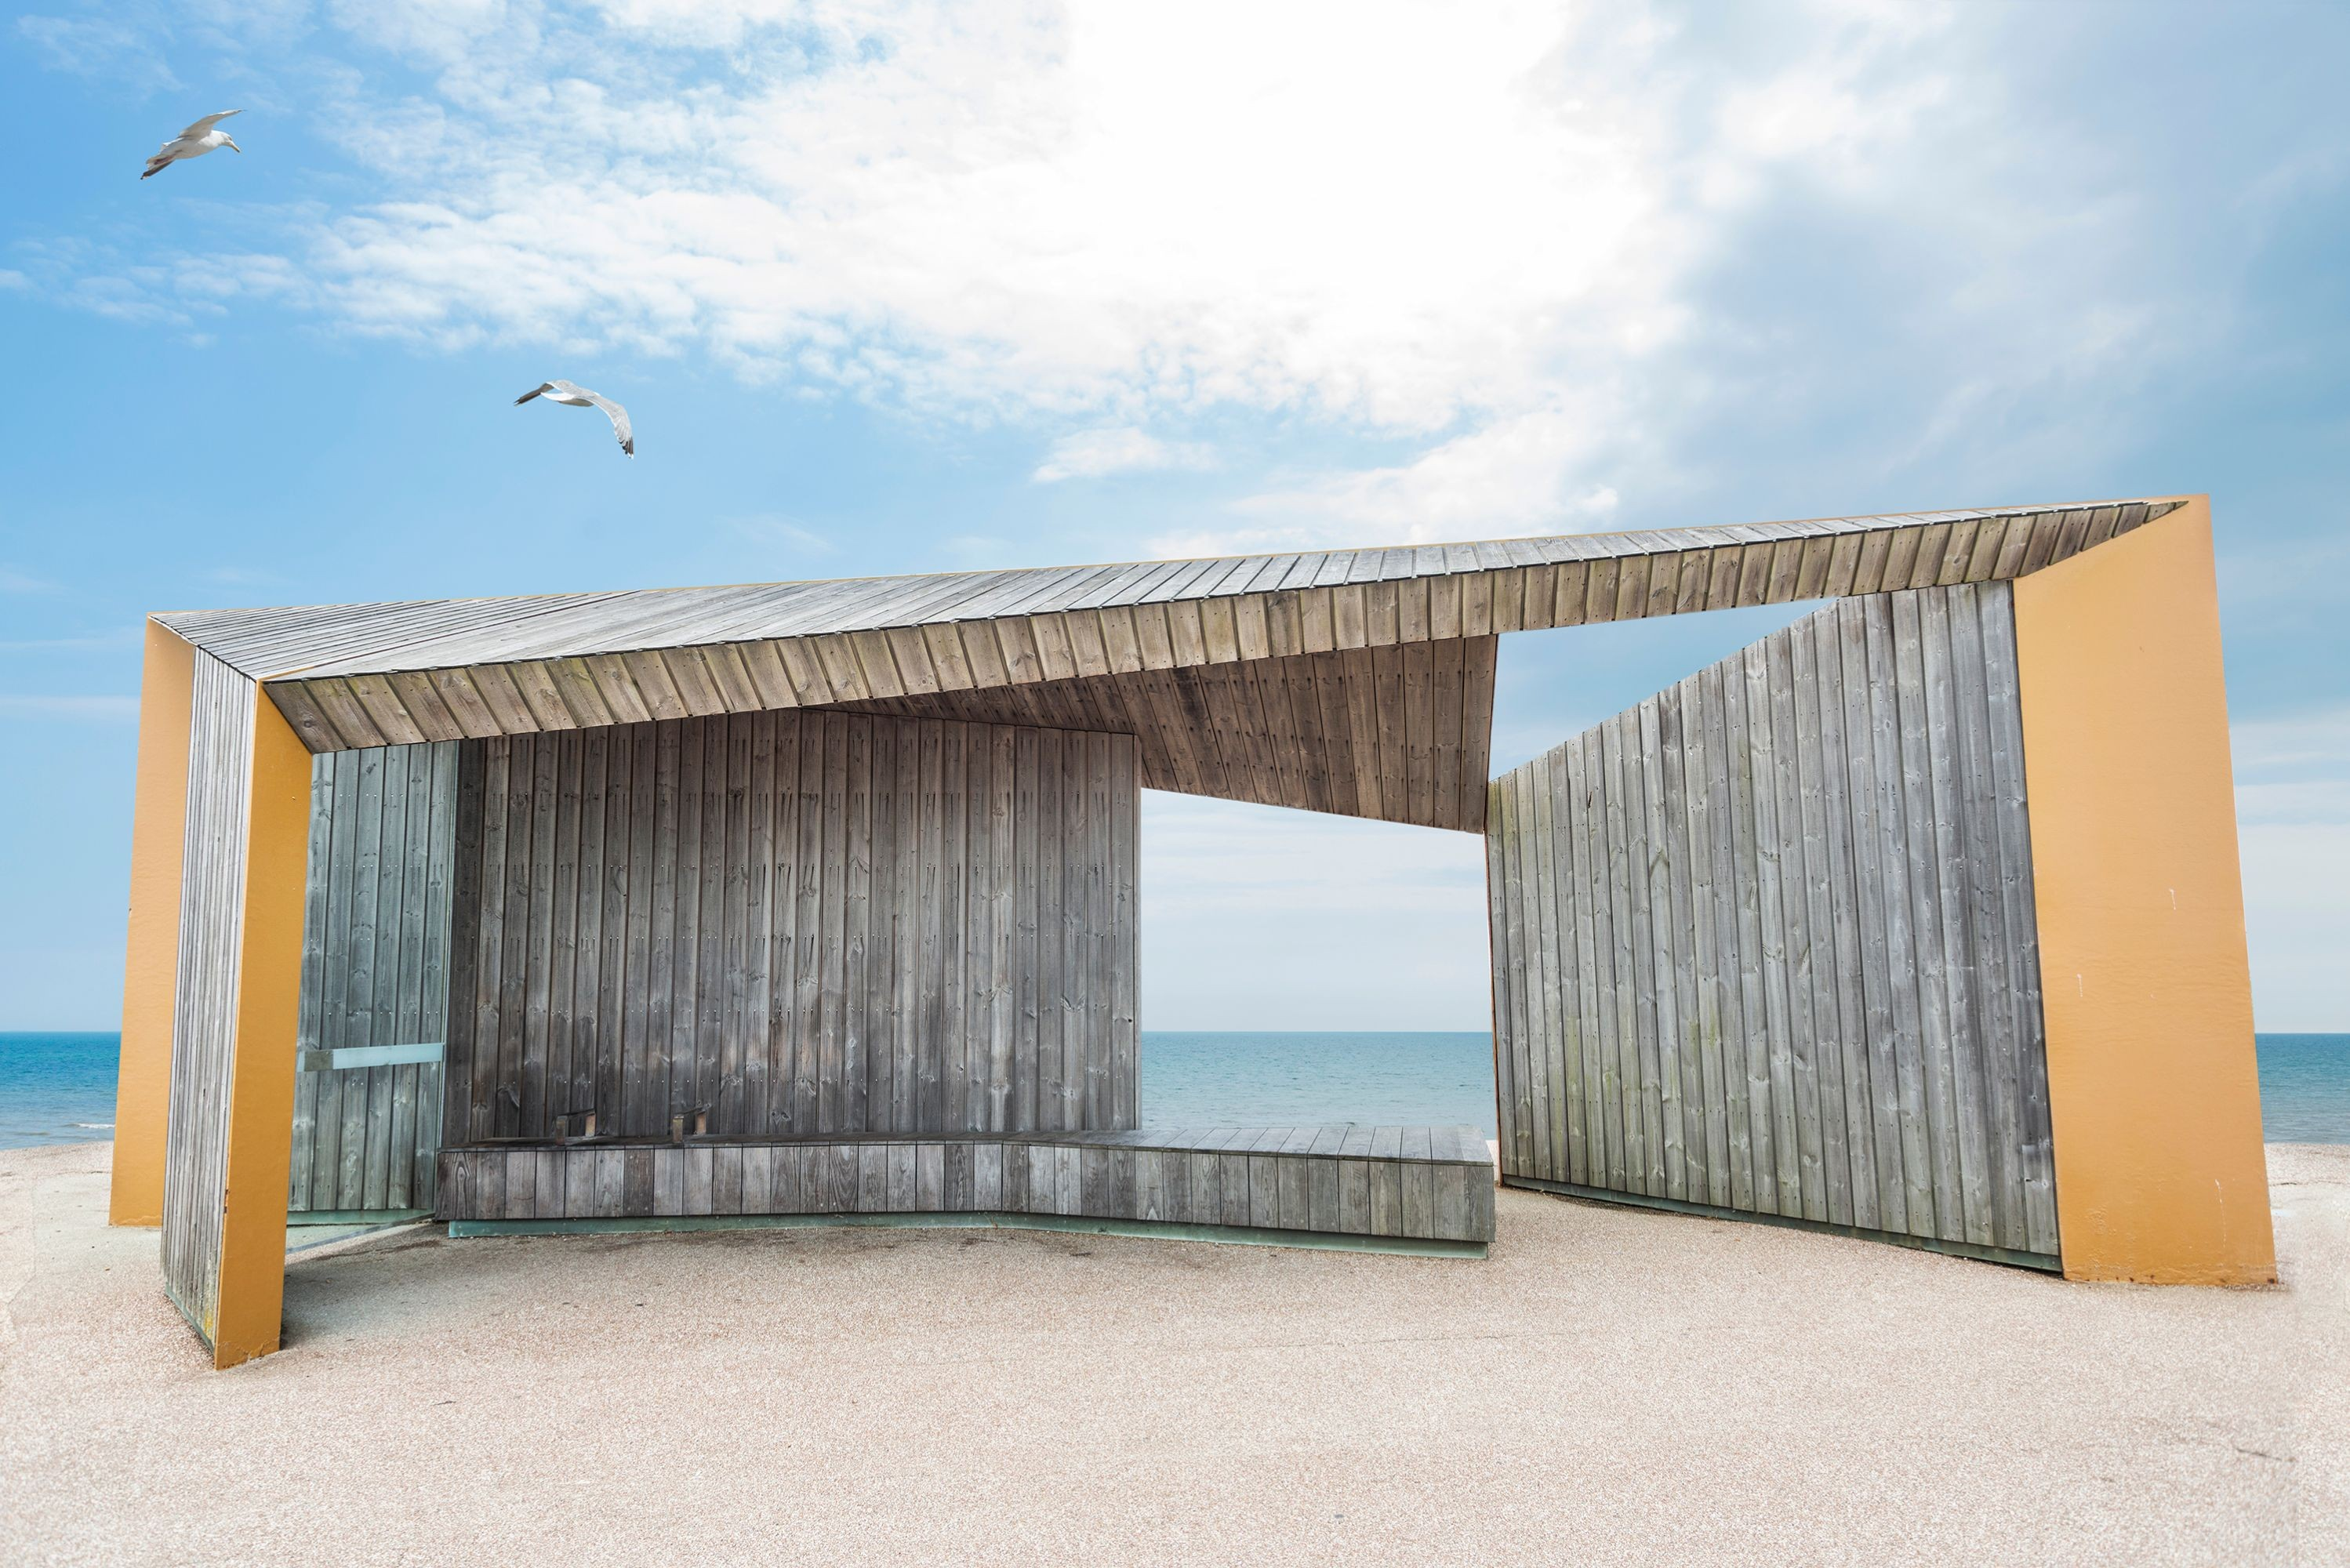 Pavillon in Bexhill-on-sea England